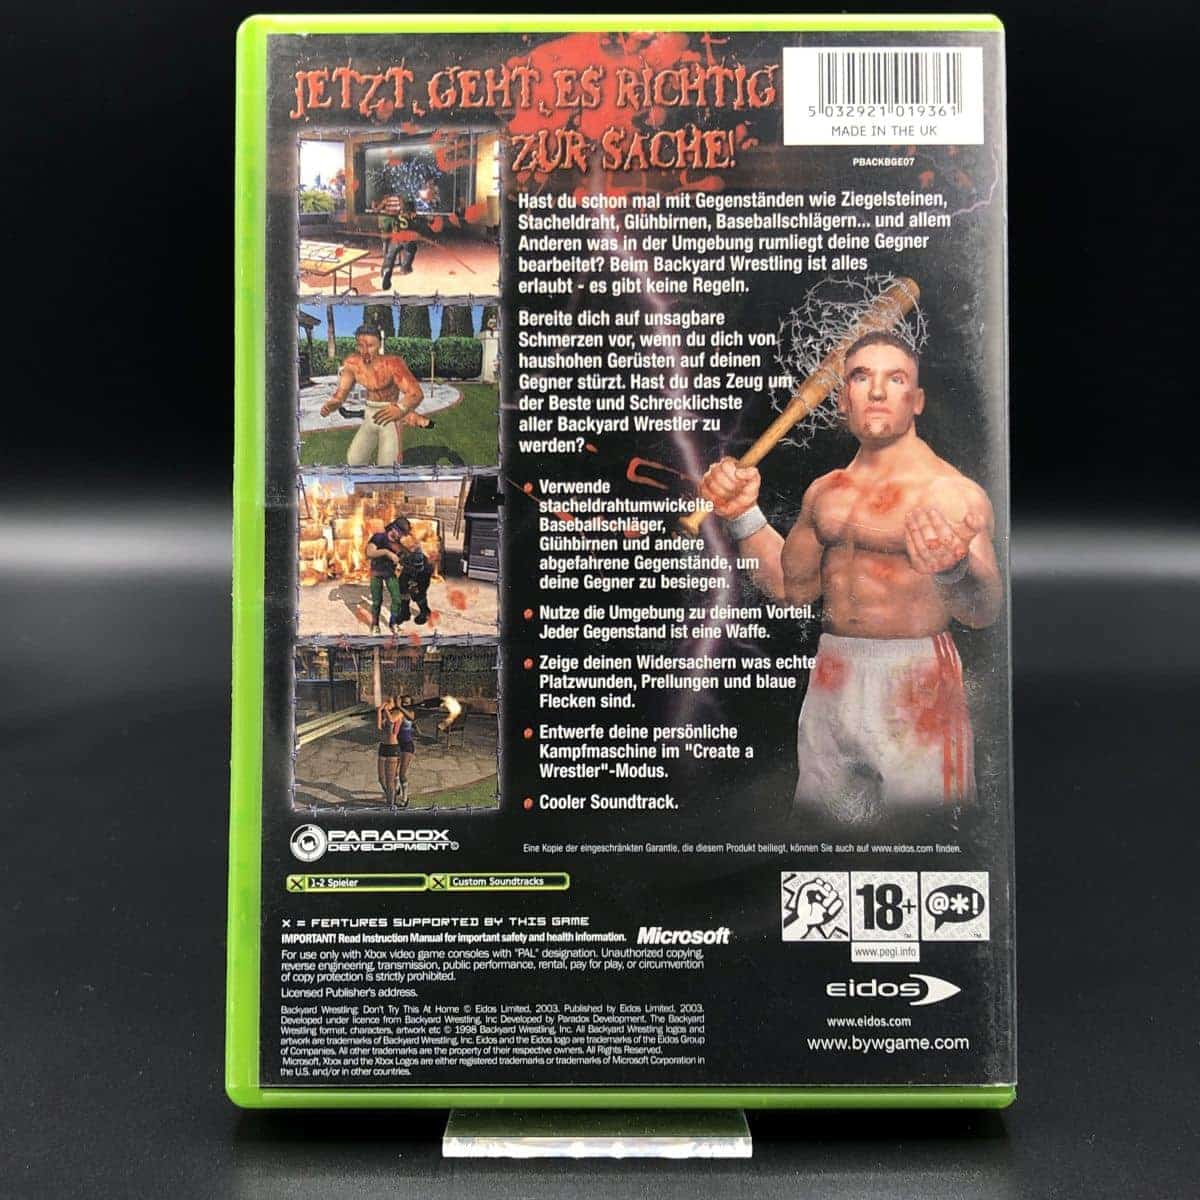 XBC Backyard Wrestling: Don't Try This at Home (Komplett) (Sehr gut) Microsoft Xbox Classic